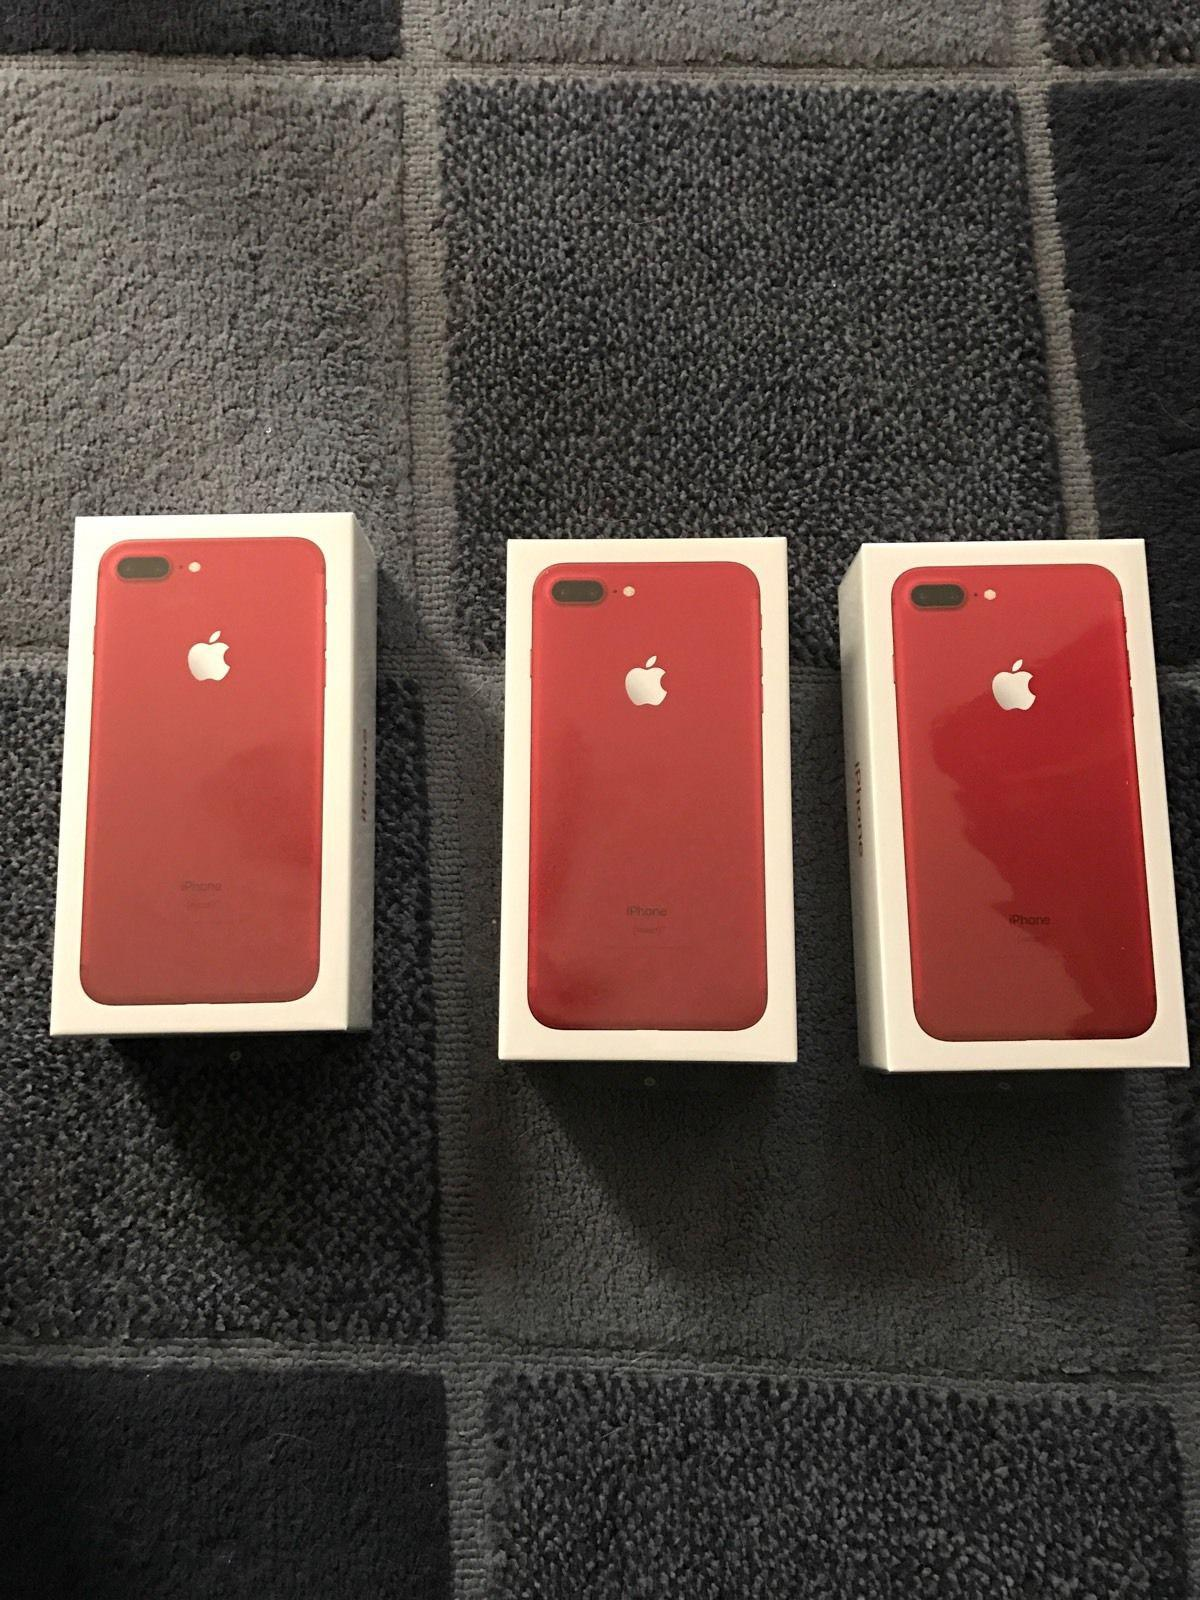 Wholesales Original Apple iPhone 7/7 Plus 128Gb (Product) Red Special Edition -Ship Now